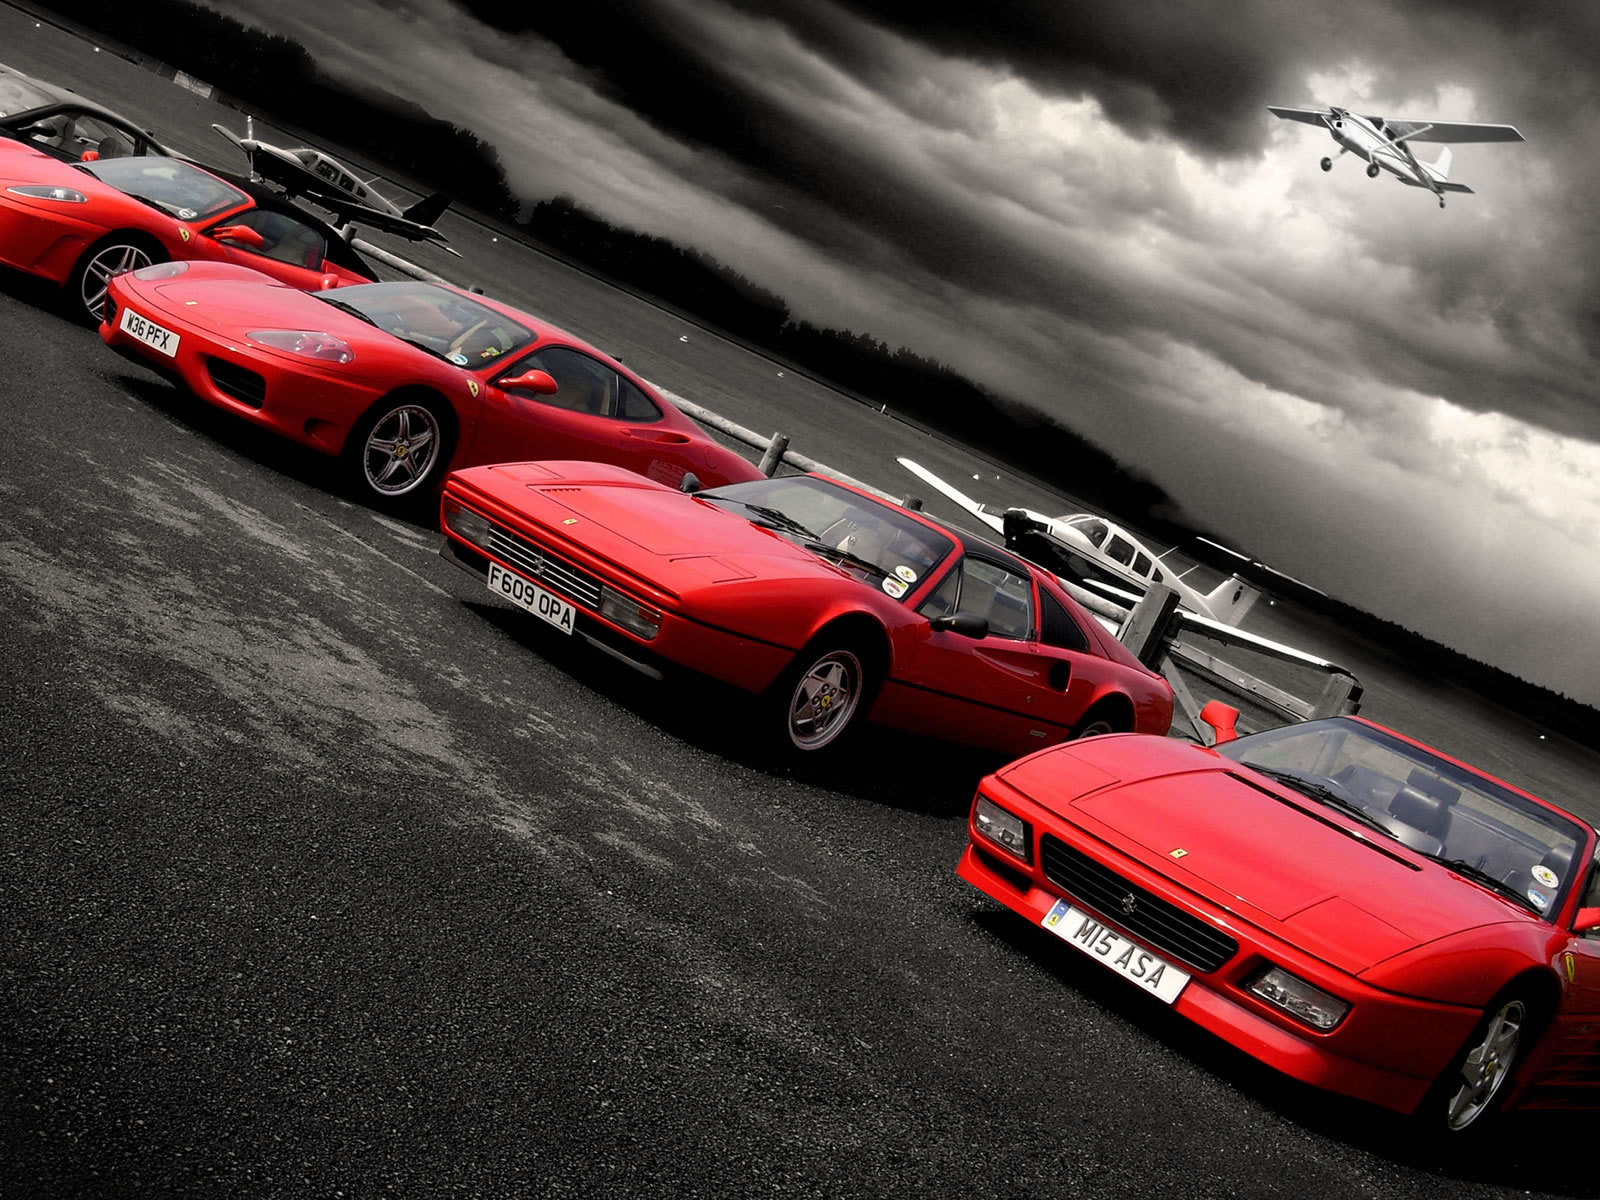 Image: Red Ferrari Cars Wallpapers And Stock Photos. «